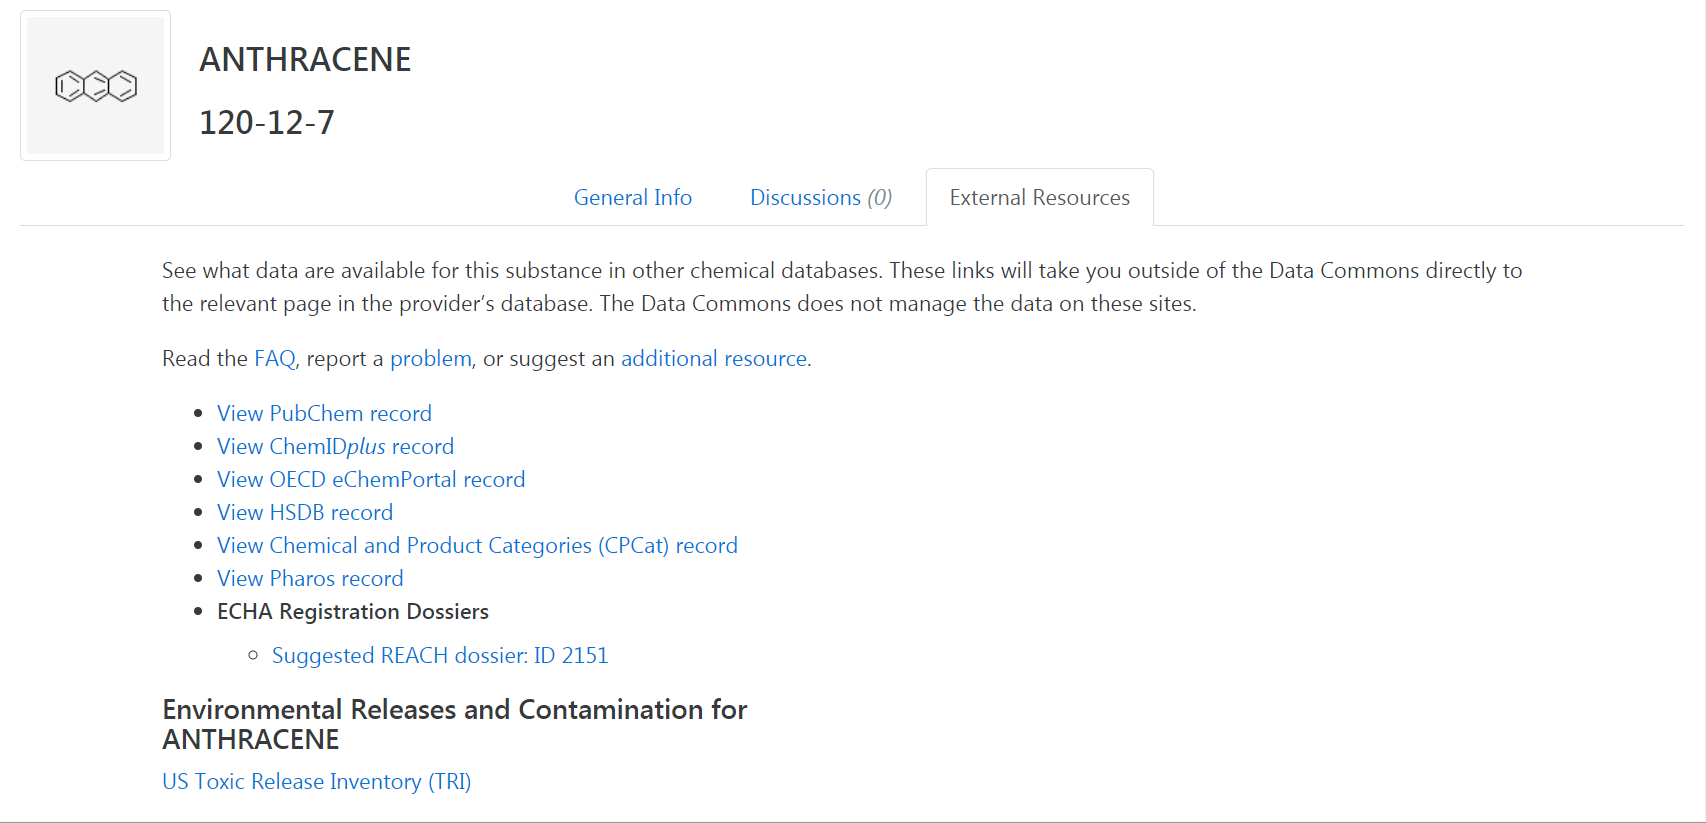 Chemical Hazard Data Commons by HBN - Quick Links to Additional Databases